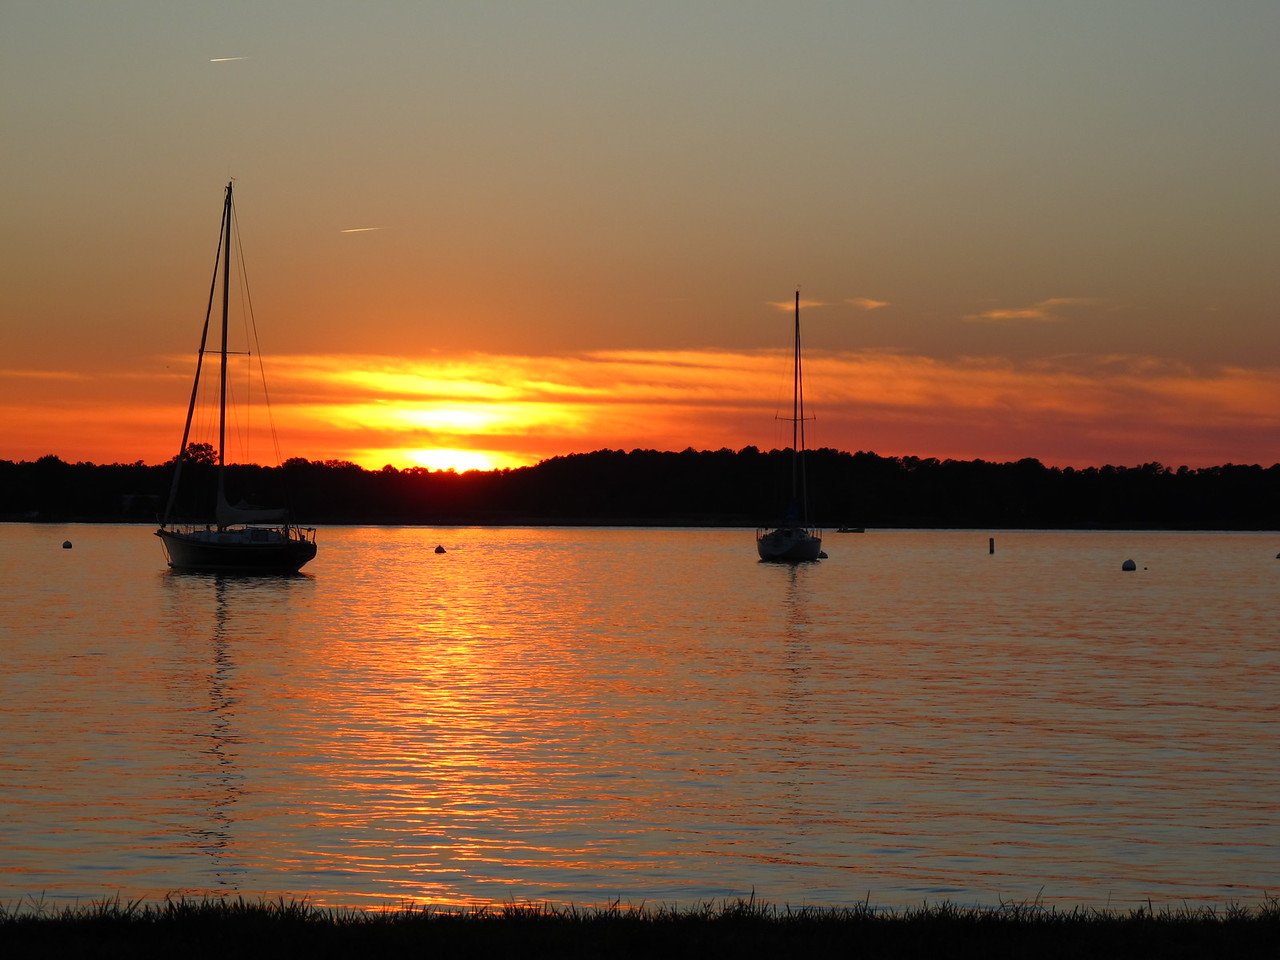 Sunset anchorage in Oxford, Md.